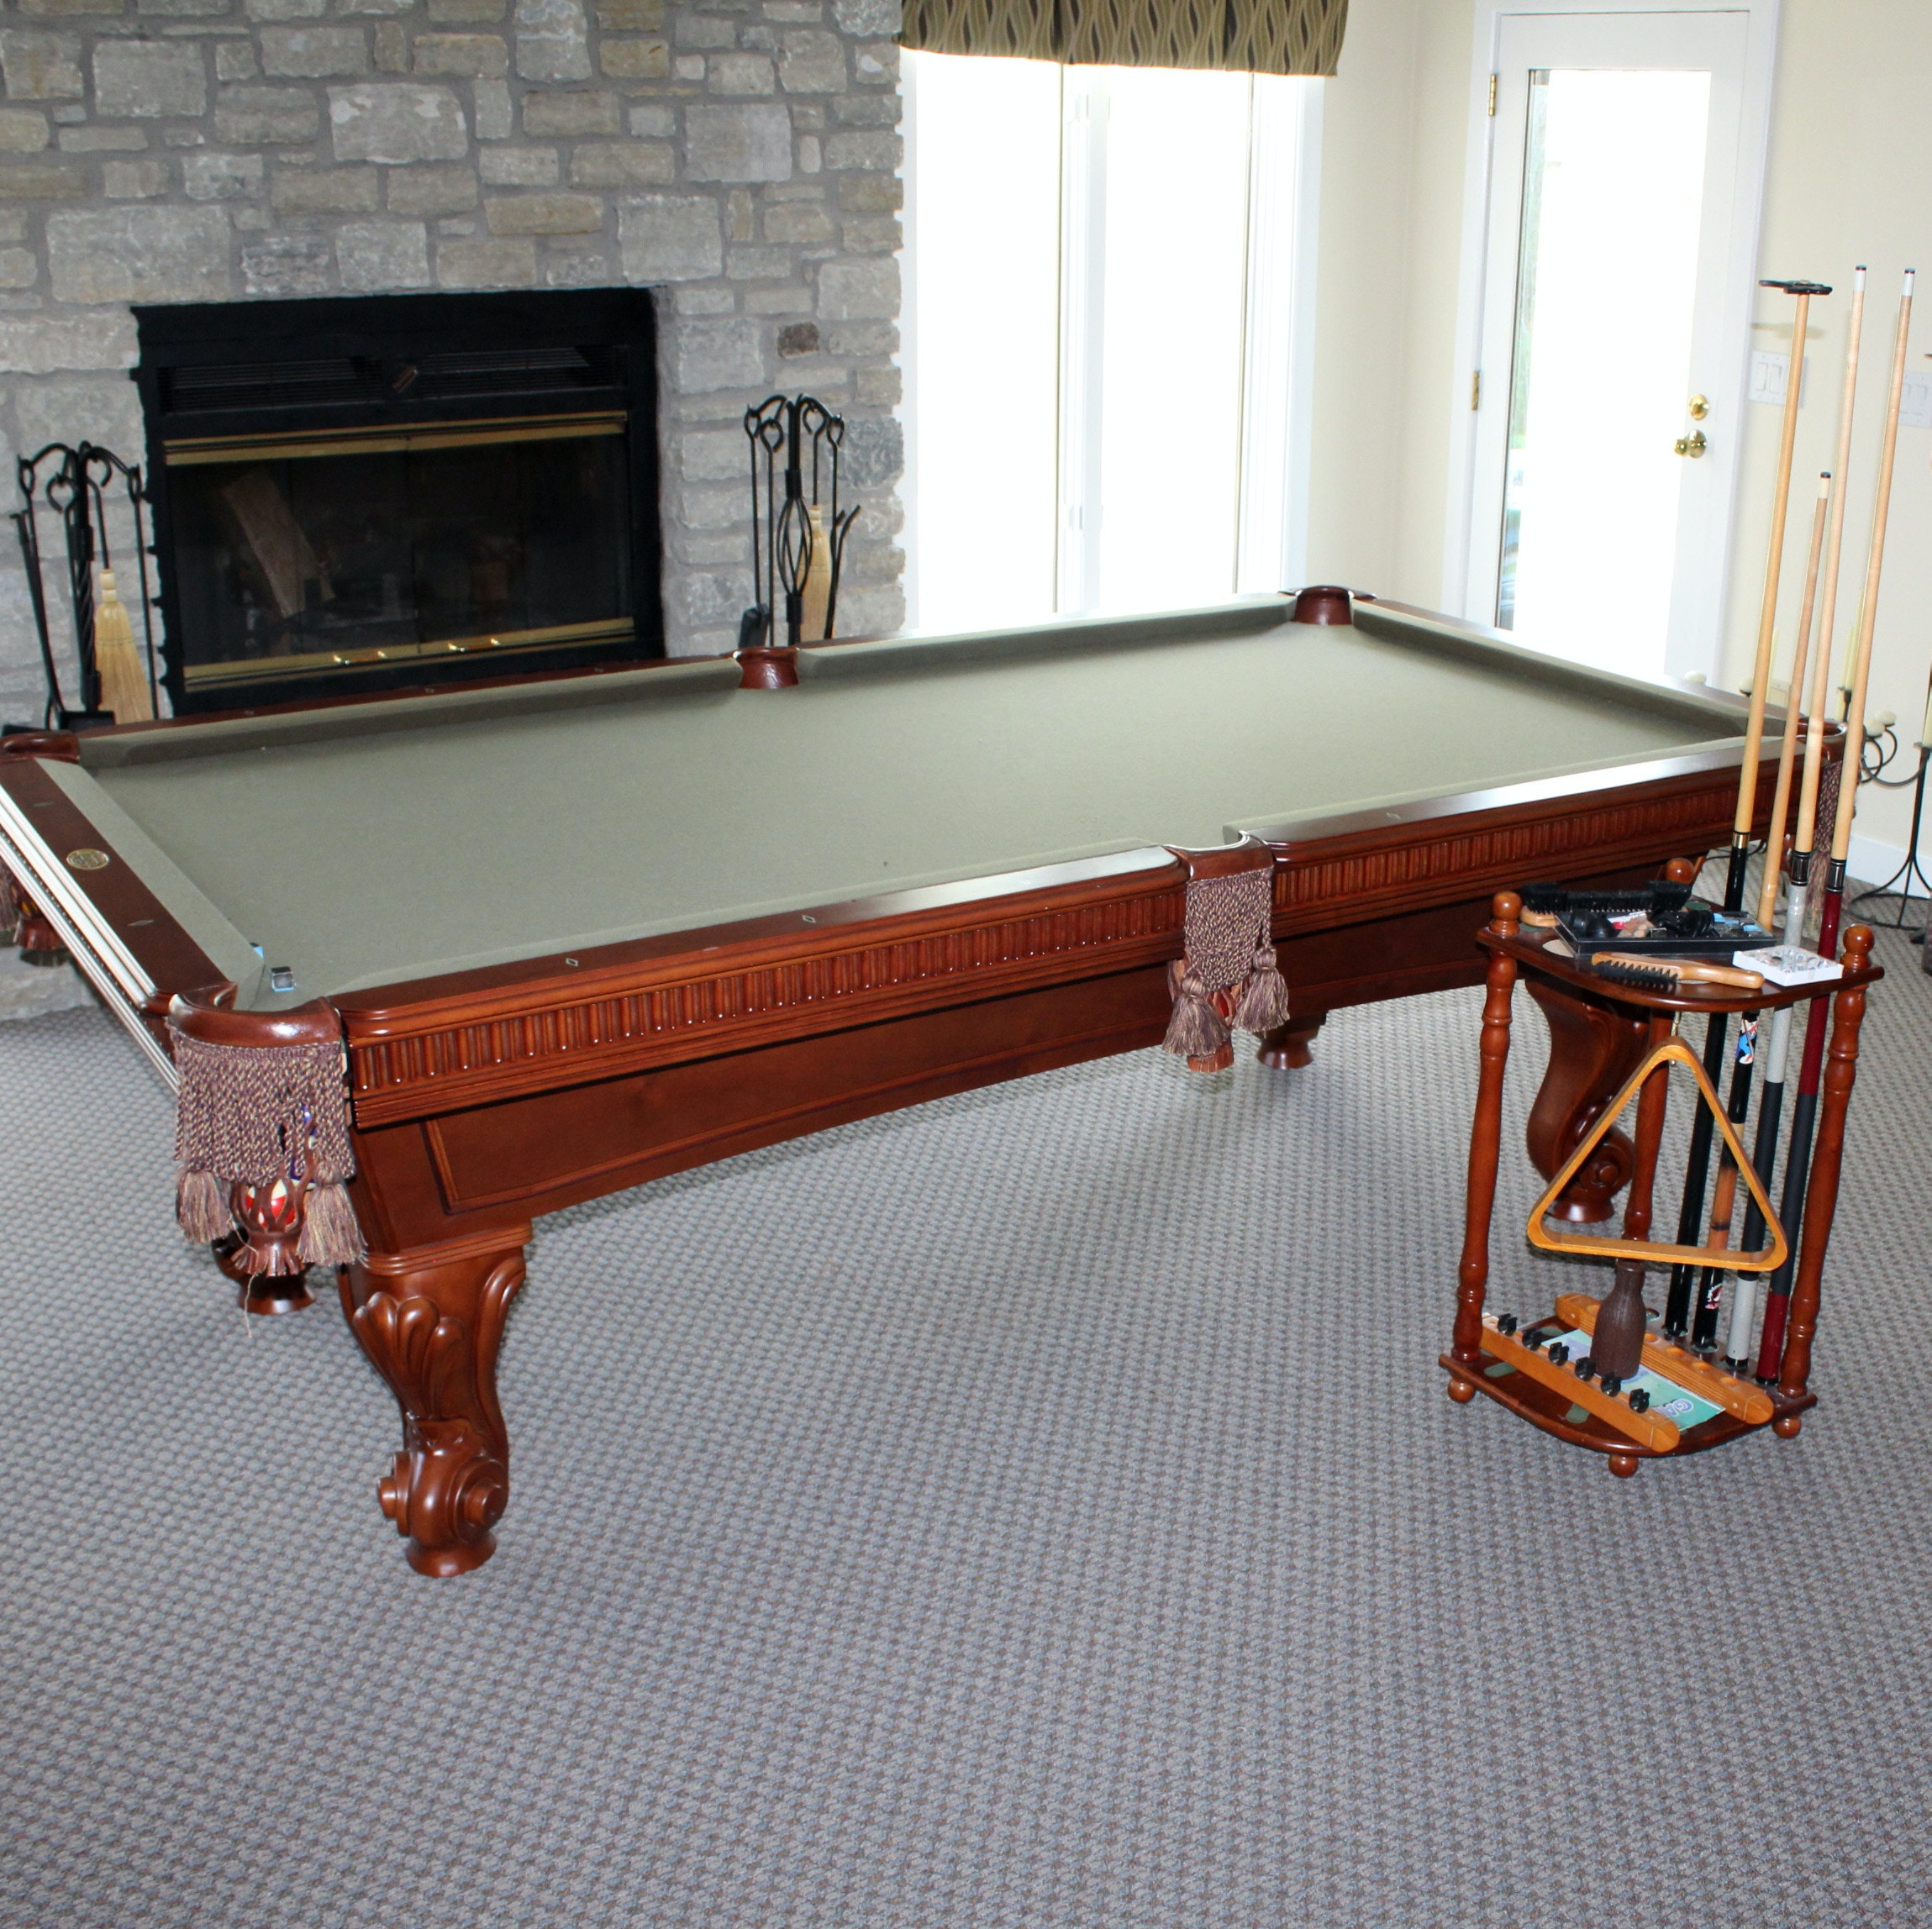 World of Leisure Billiards Table and Accessories